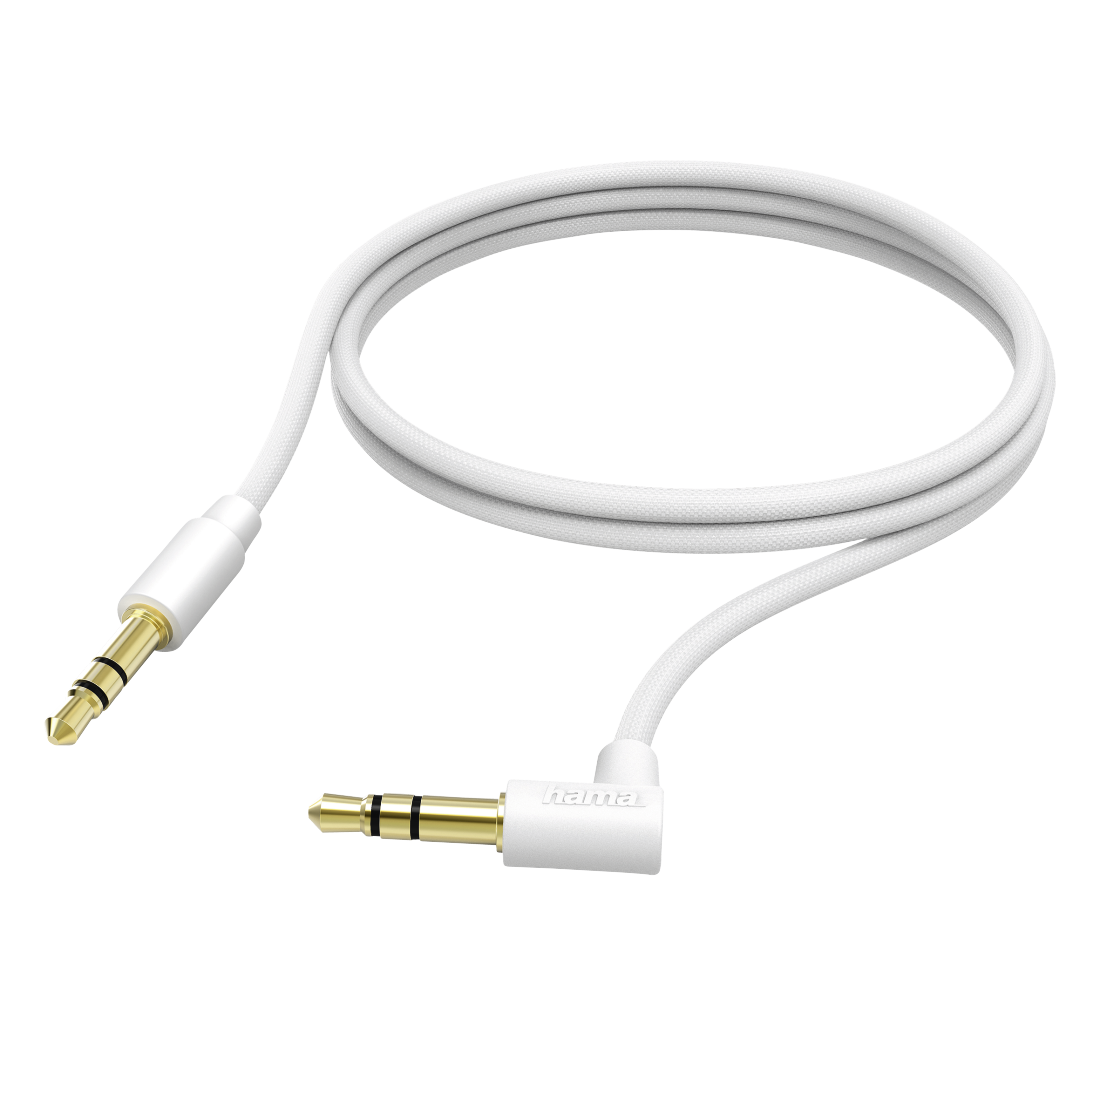 abx High-Res Image - Hama, Connecting Cable, 3.5 mm jack plug, 1.0 m, white